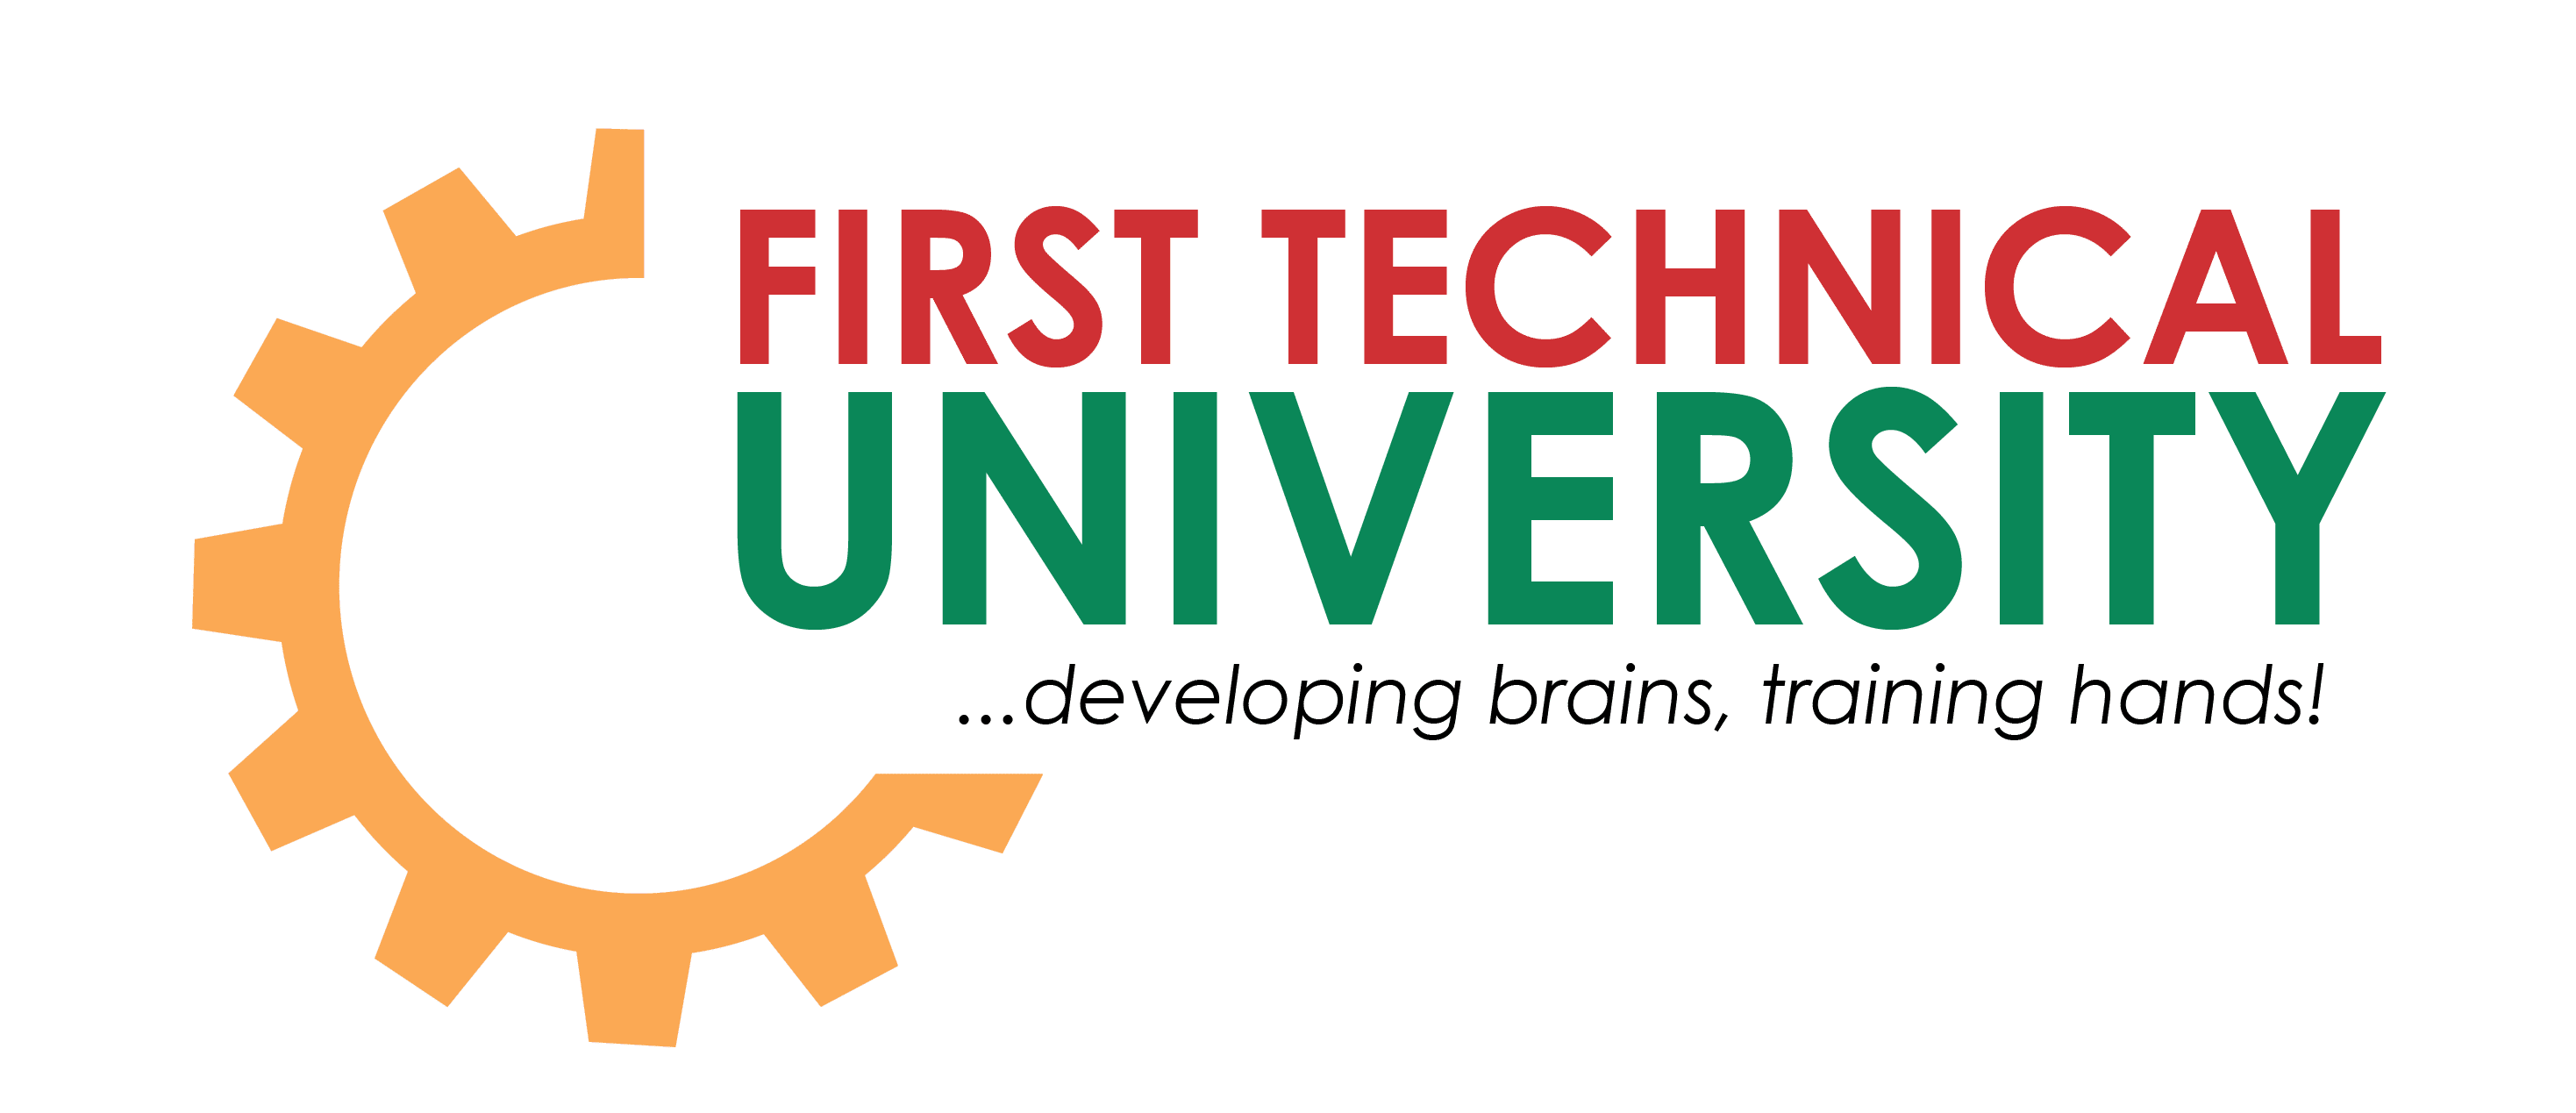 First Technical University logo